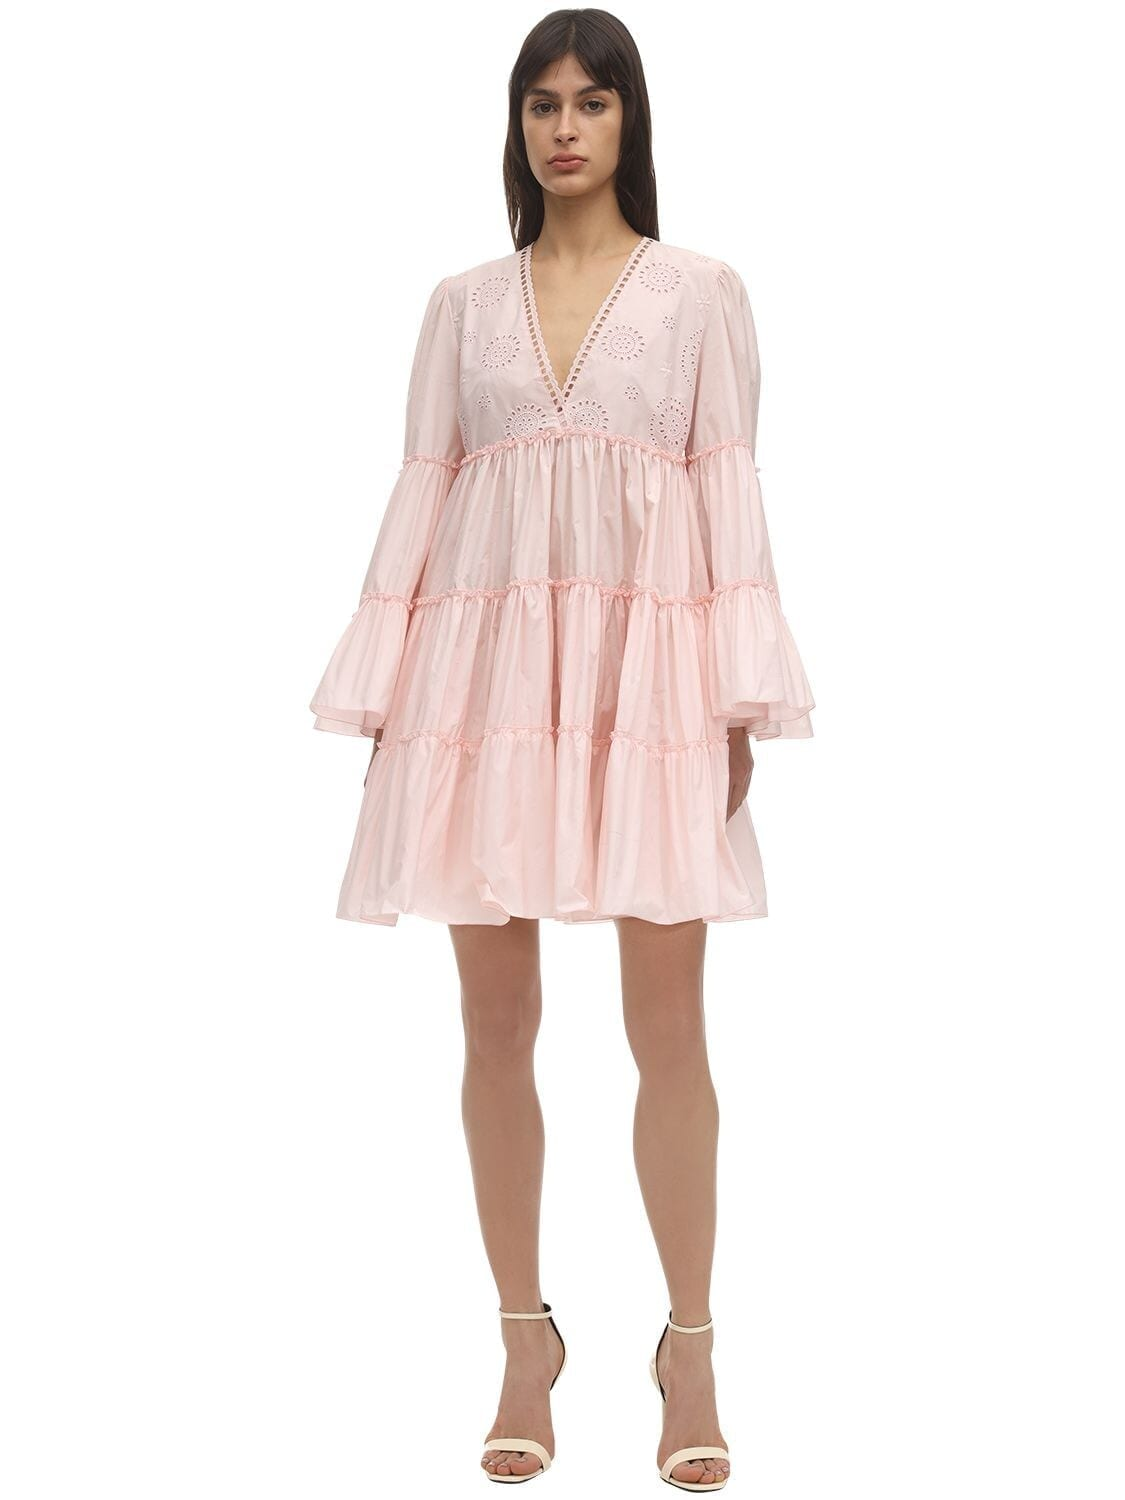 GIAMBA Eyelet Lace Taffeta Mini Dress